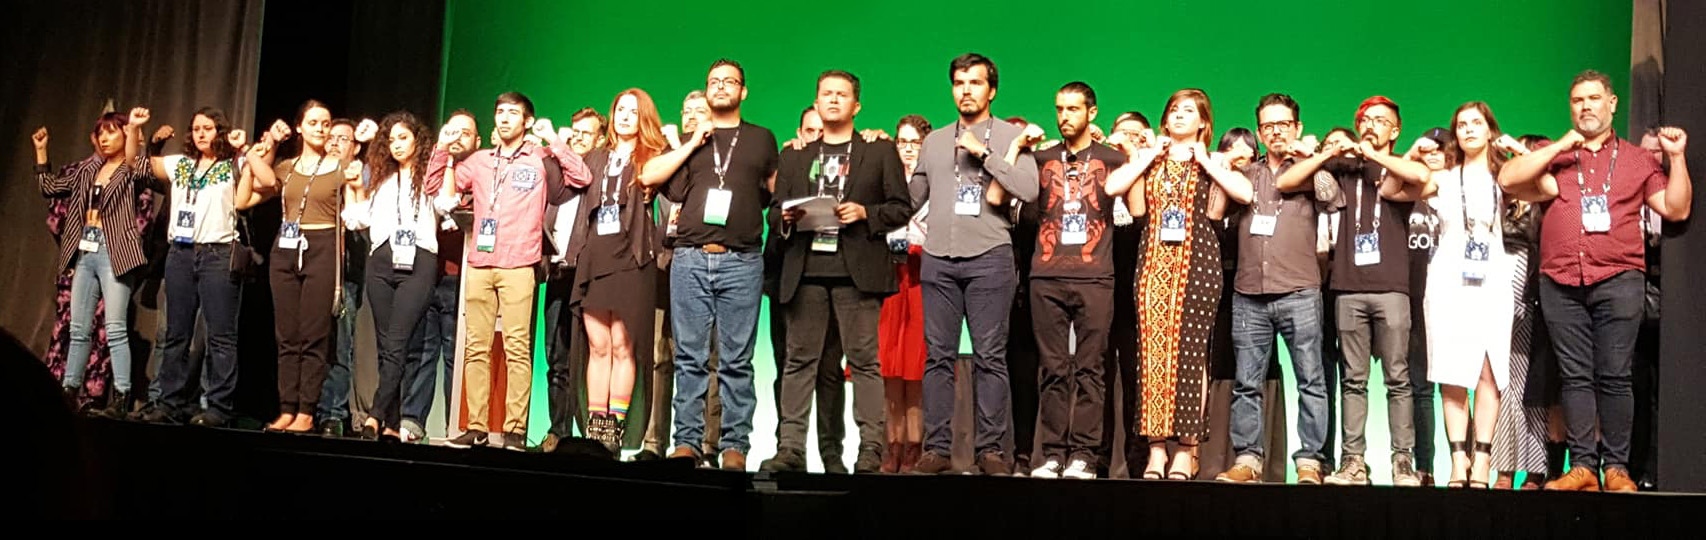 John Picacio and members of the  Mexicanx Initiative  at the  WorldCon 76  opening ceremony.